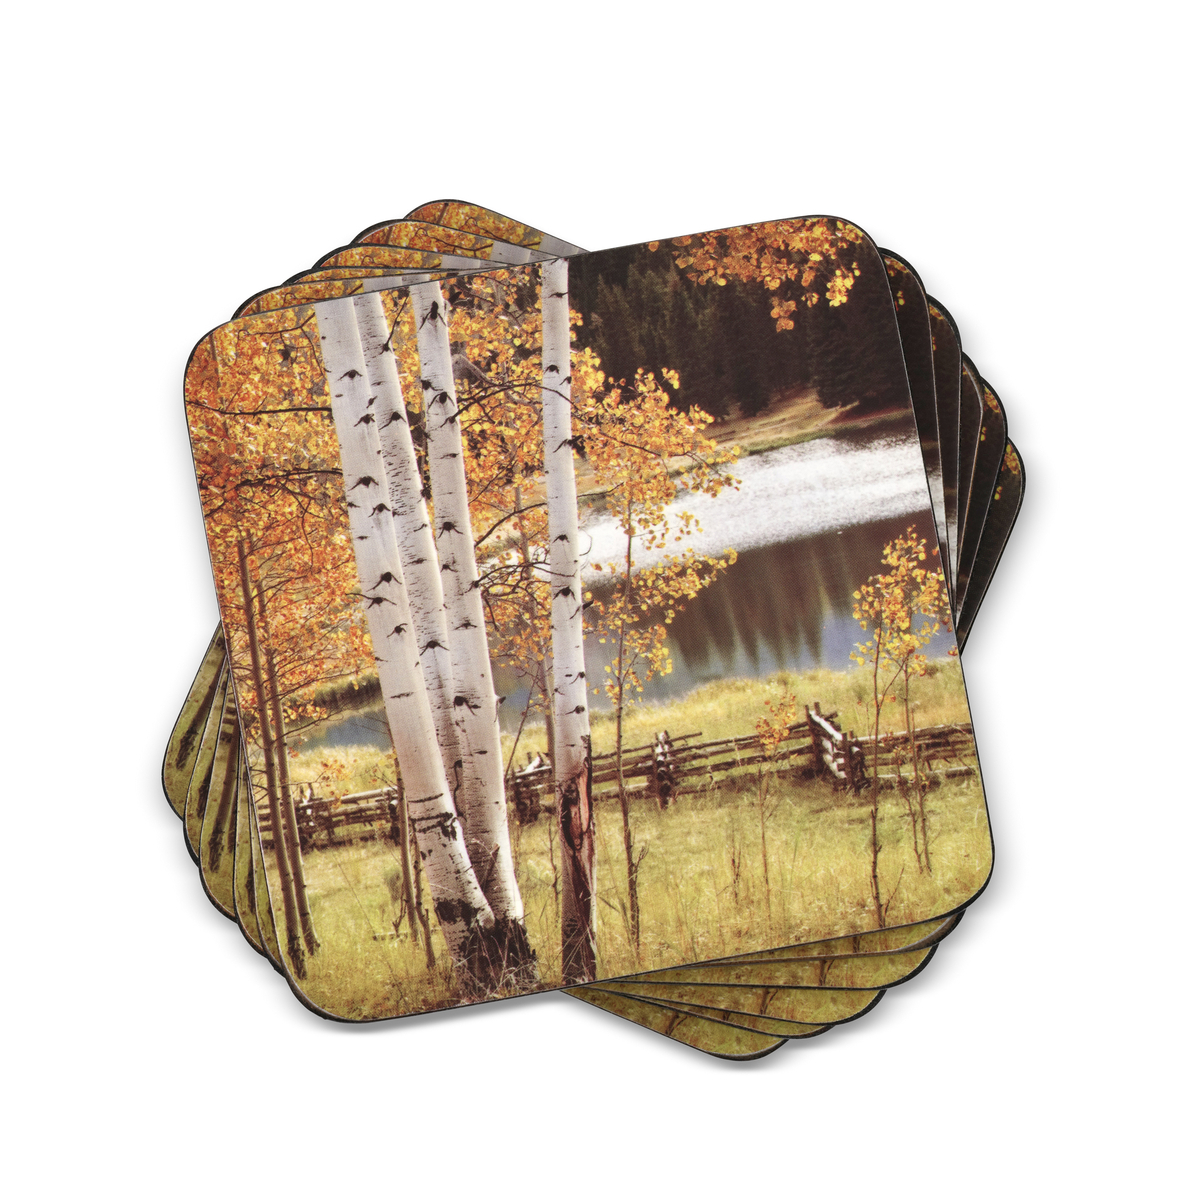 Pimpernel Birch Beauty Coasters Set of 6 image number 0